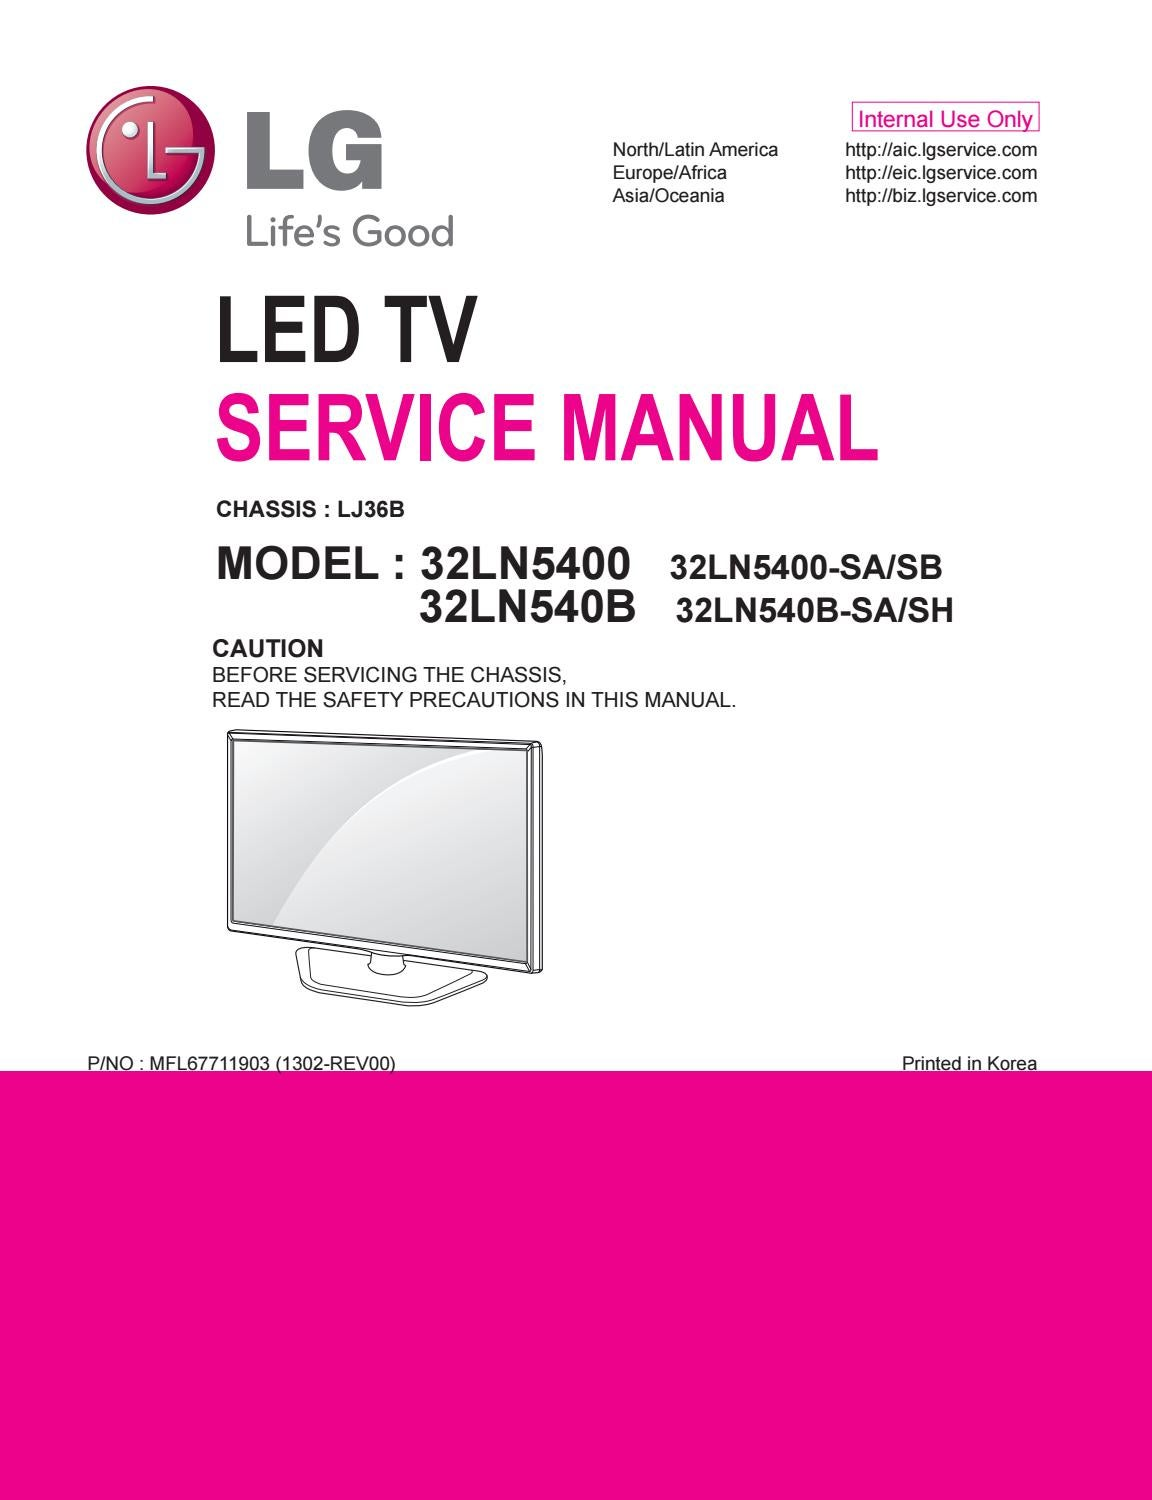 Jb Lighting A7 Zoom Manual Manual De Serviço Tv Lg Led 32ln5400 Sa E Sb E 32ln540b Sa E Sh